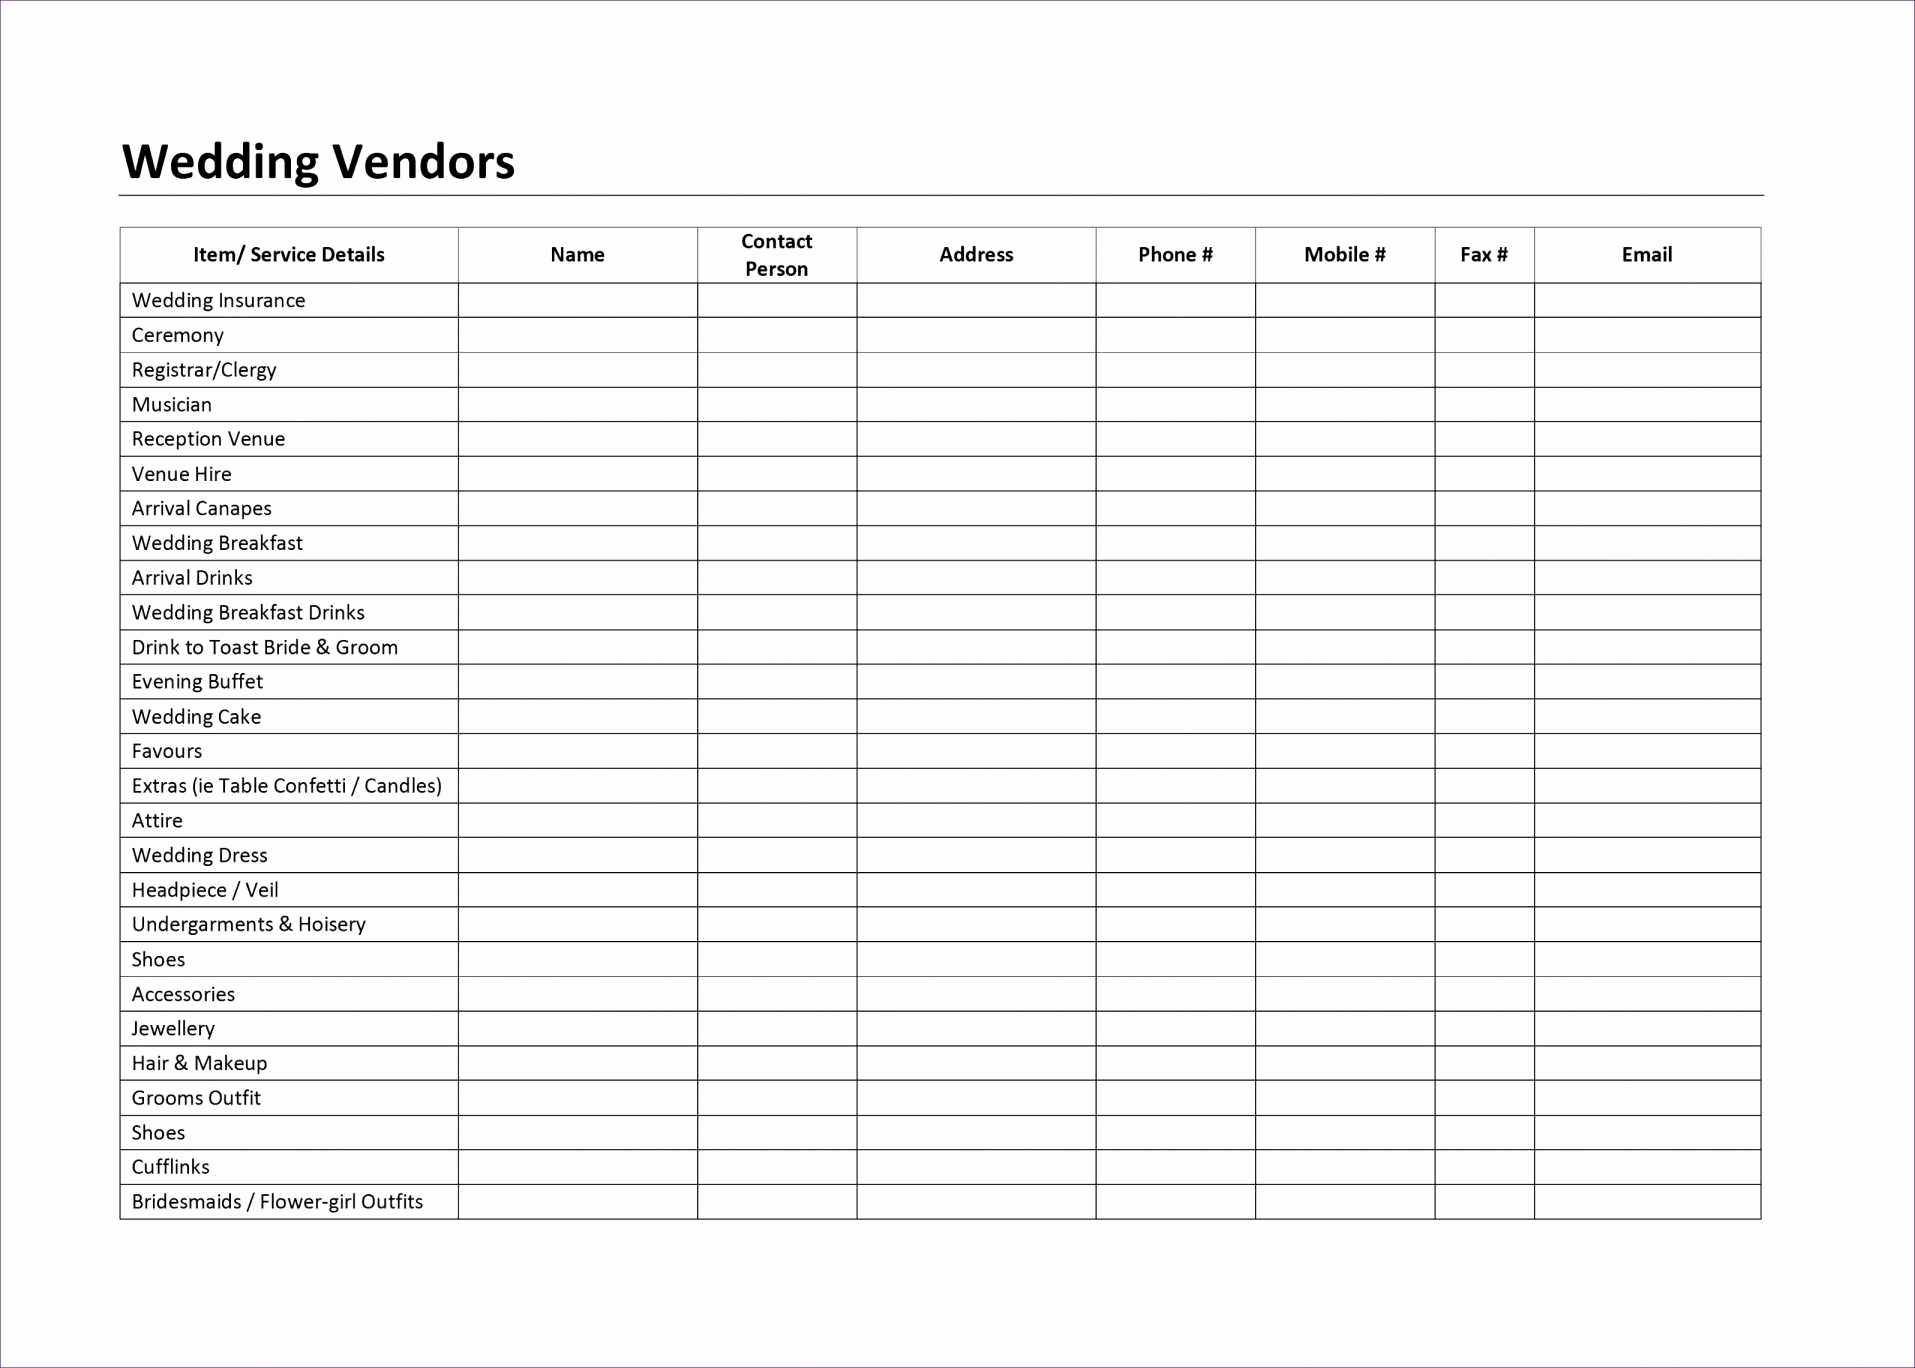 tax spreadsheet template Beautiful Spreadsheet Templates Tax Deduction Cheat Sheet For Real Estate